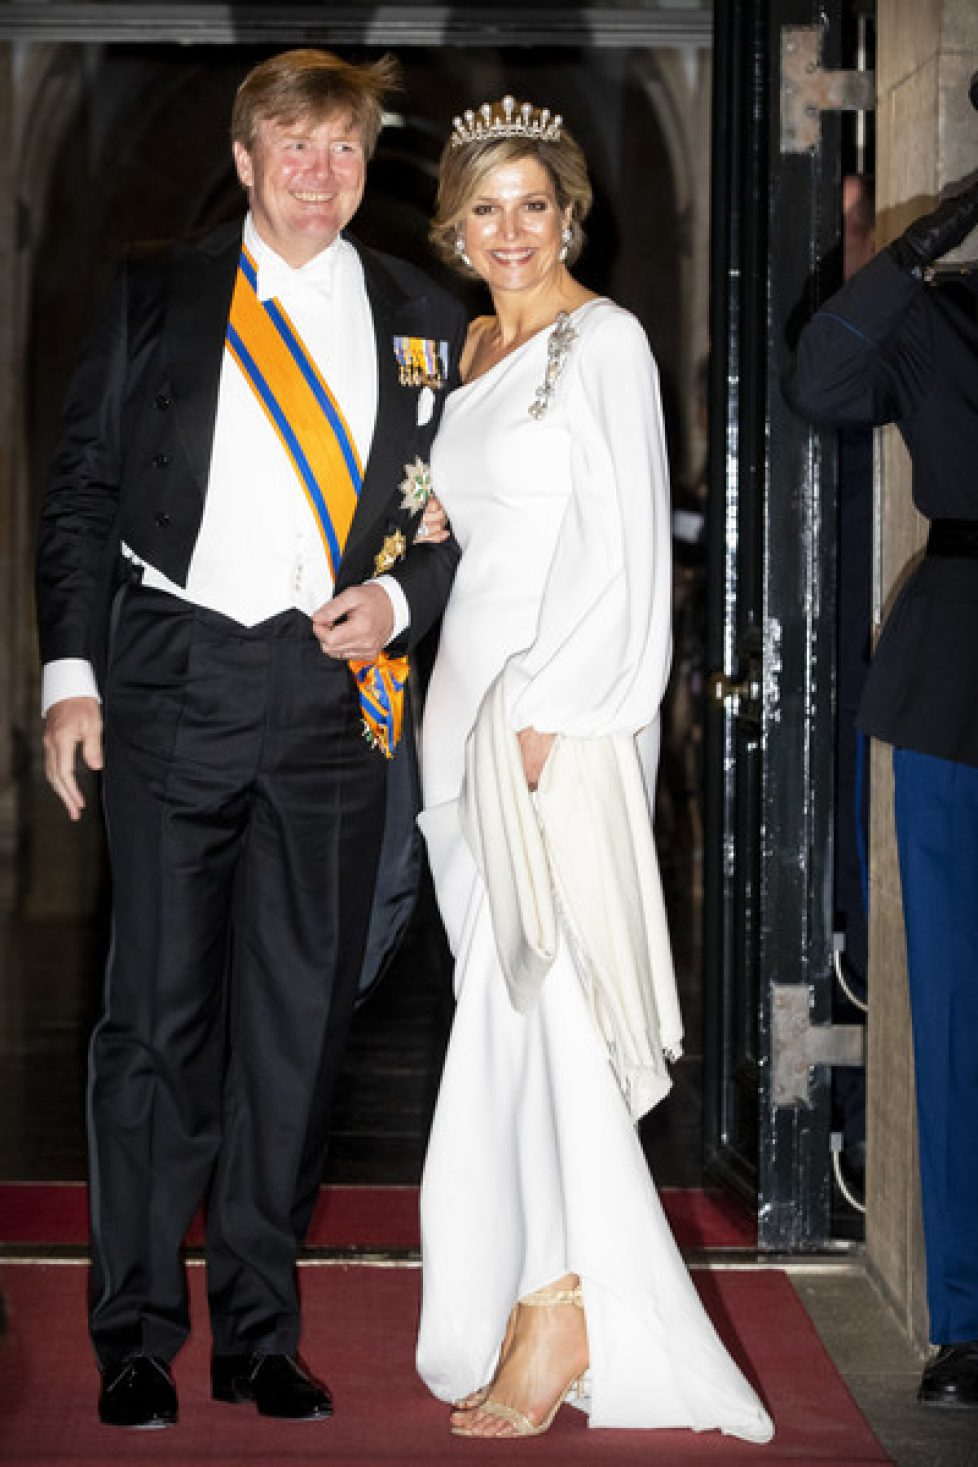 Dutch+Royal+family+Attends+gala+Diner+Corps+PfG2MBRM6Hal